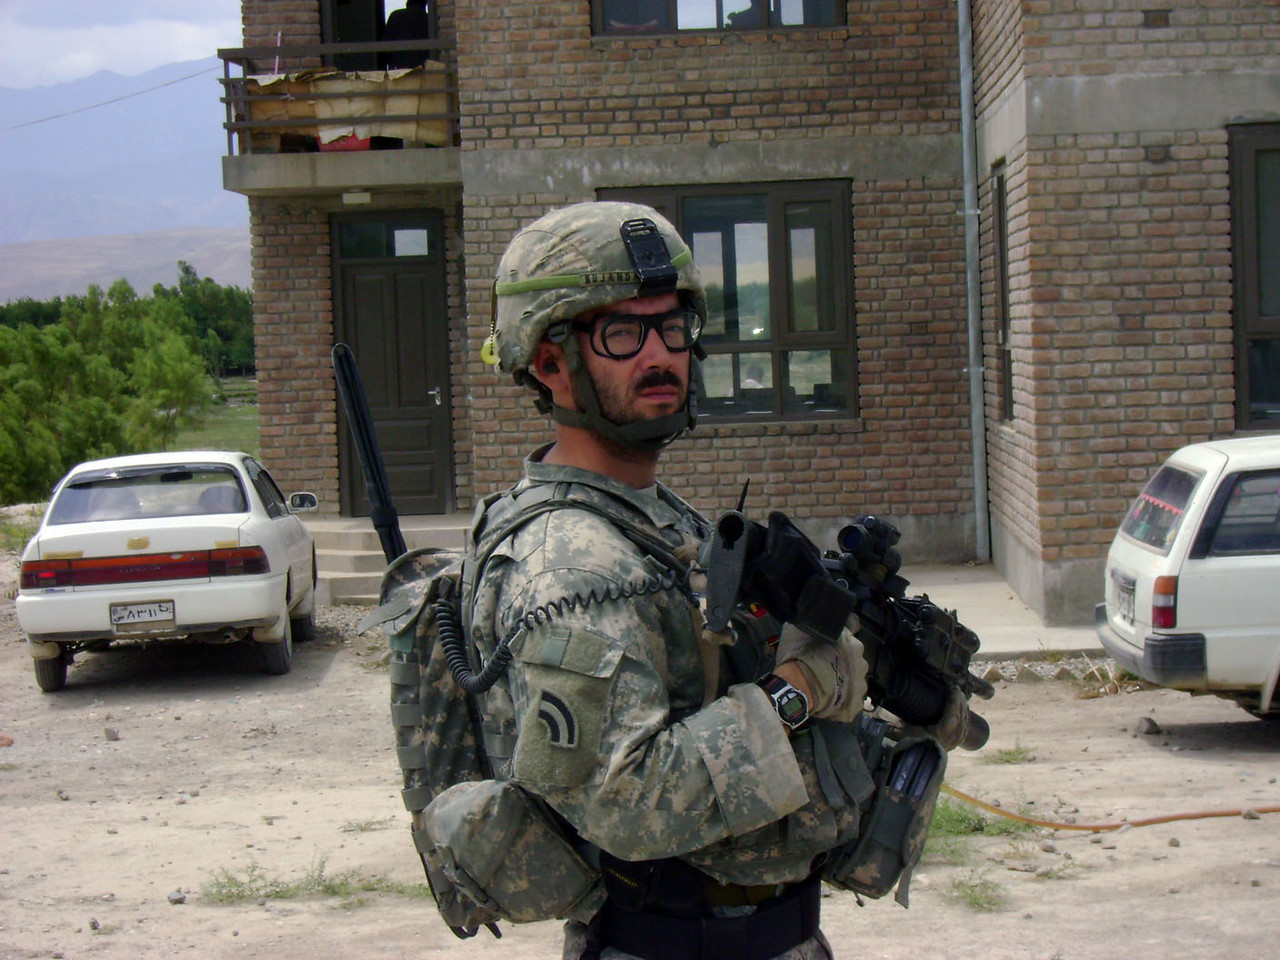 Provicial Reconstruction Team, Nangarhar, Jalalabad, Afghanistan, Video, PRT, JBAD, FOB, FOB FinleyShields, Finley Shields, FOB, PRT 7, Civil Affairs, 158th, sky soldier, lucky 7, Military, Air Force, Army, 158th AZ Army National Guard